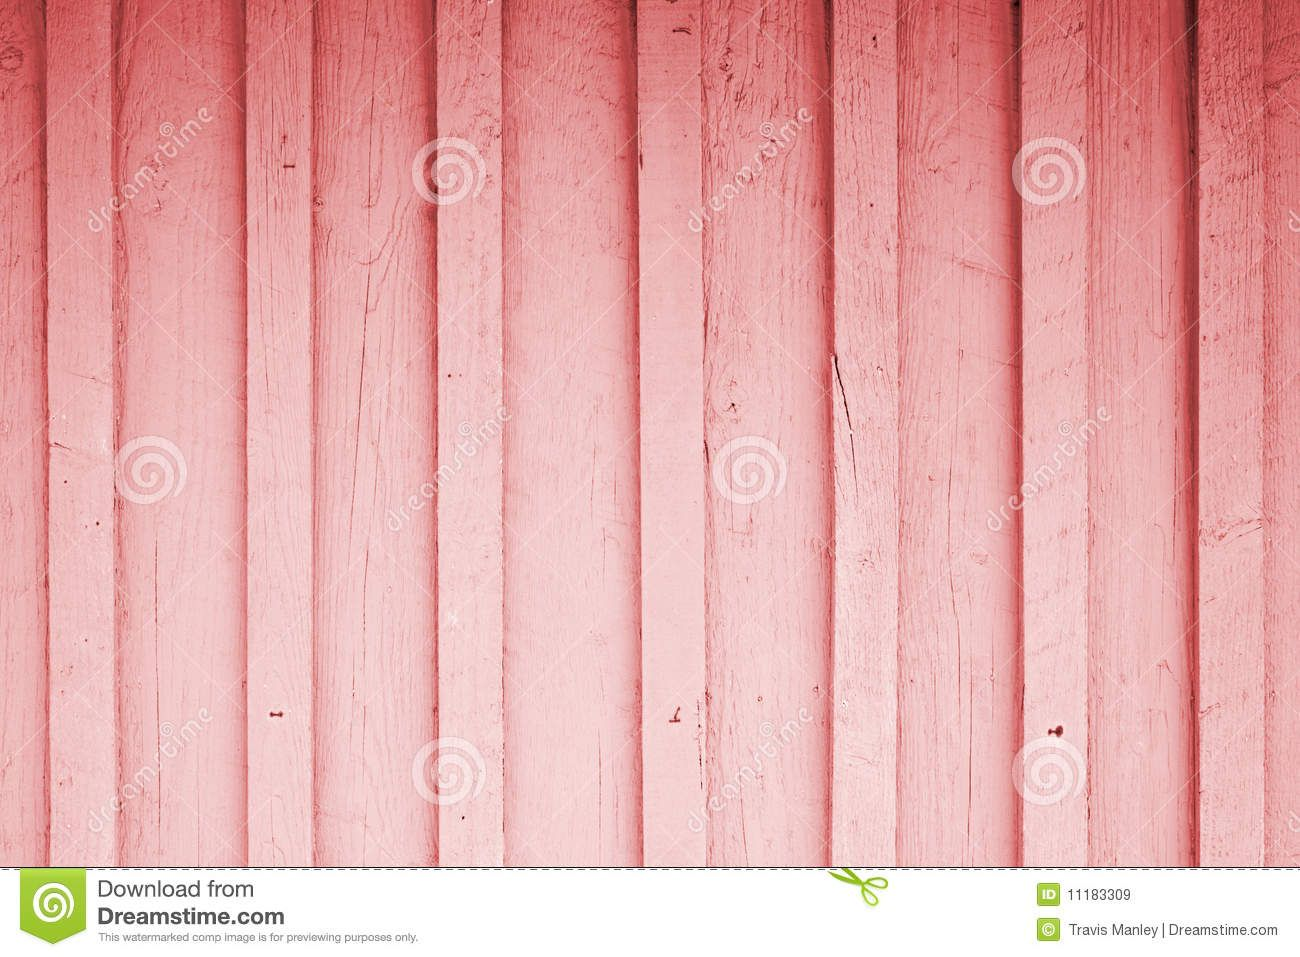 Images For   Vertical Wood Siding Texture. 1000  images about Lyons Exterior Materials on Pinterest